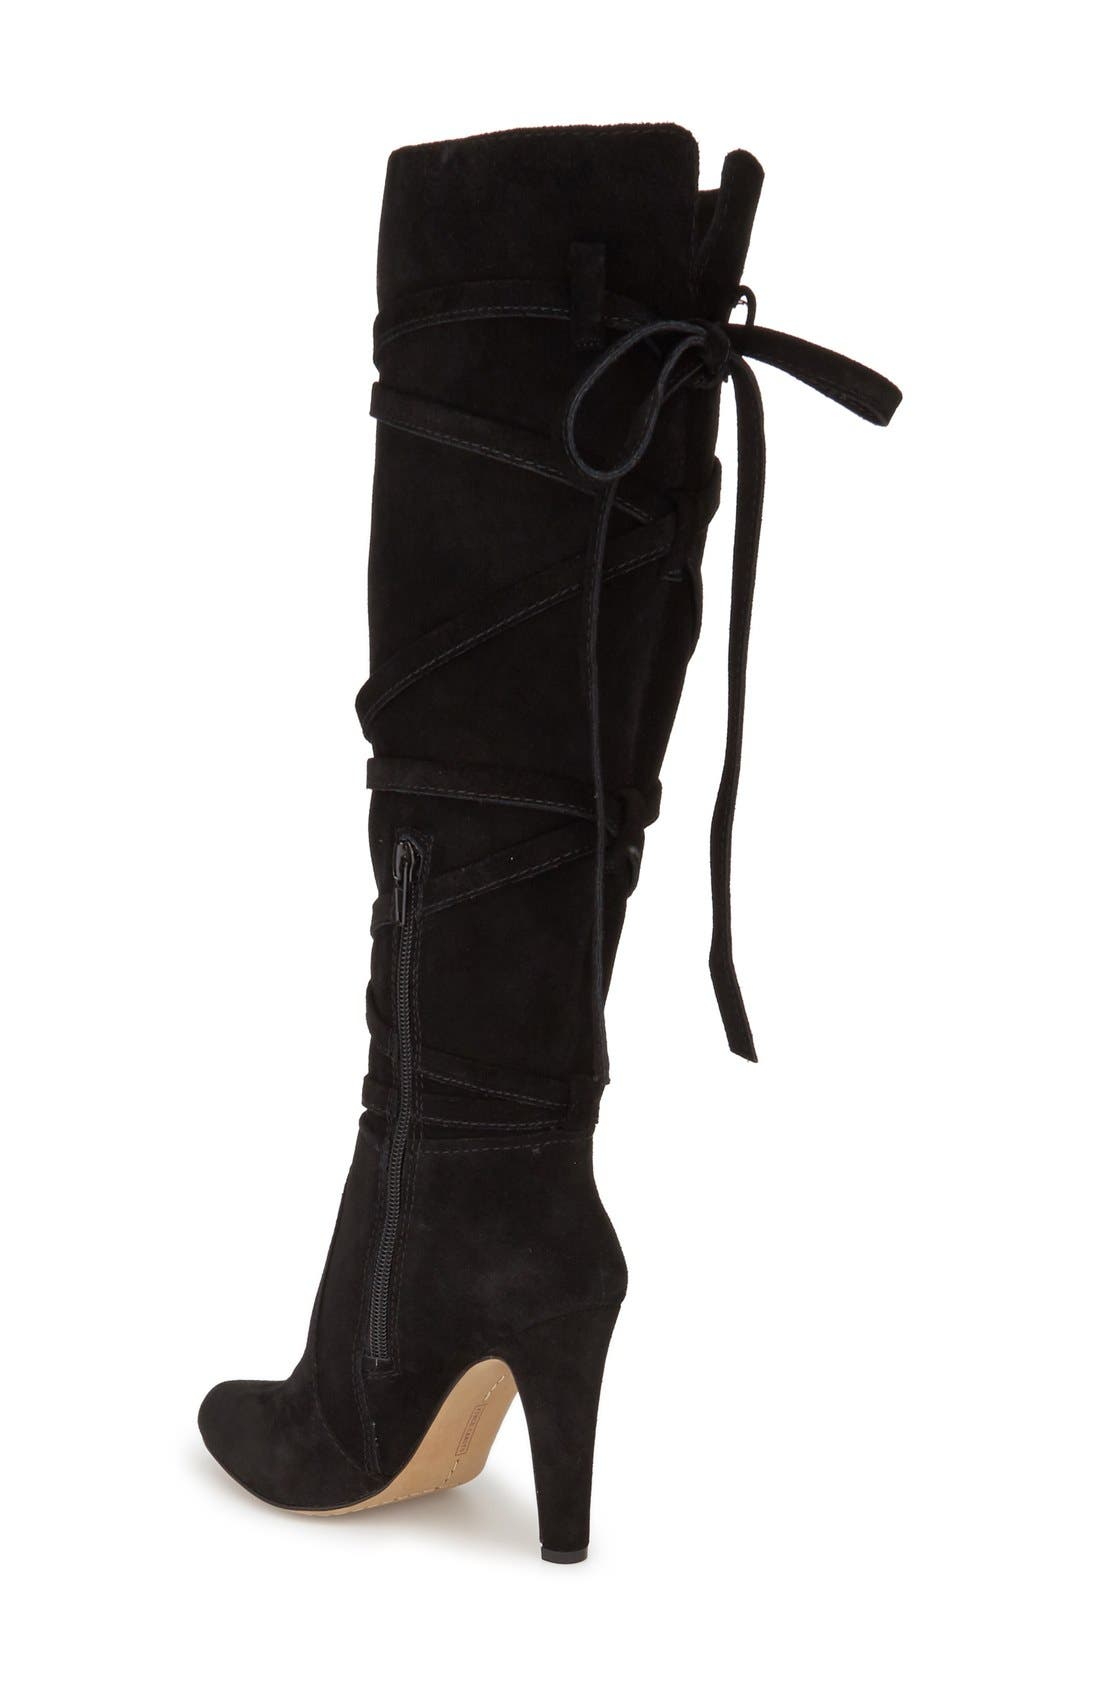 VINCE CAMUTO, 'Millay' Knee High Boot, Alternate thumbnail 3, color, 002